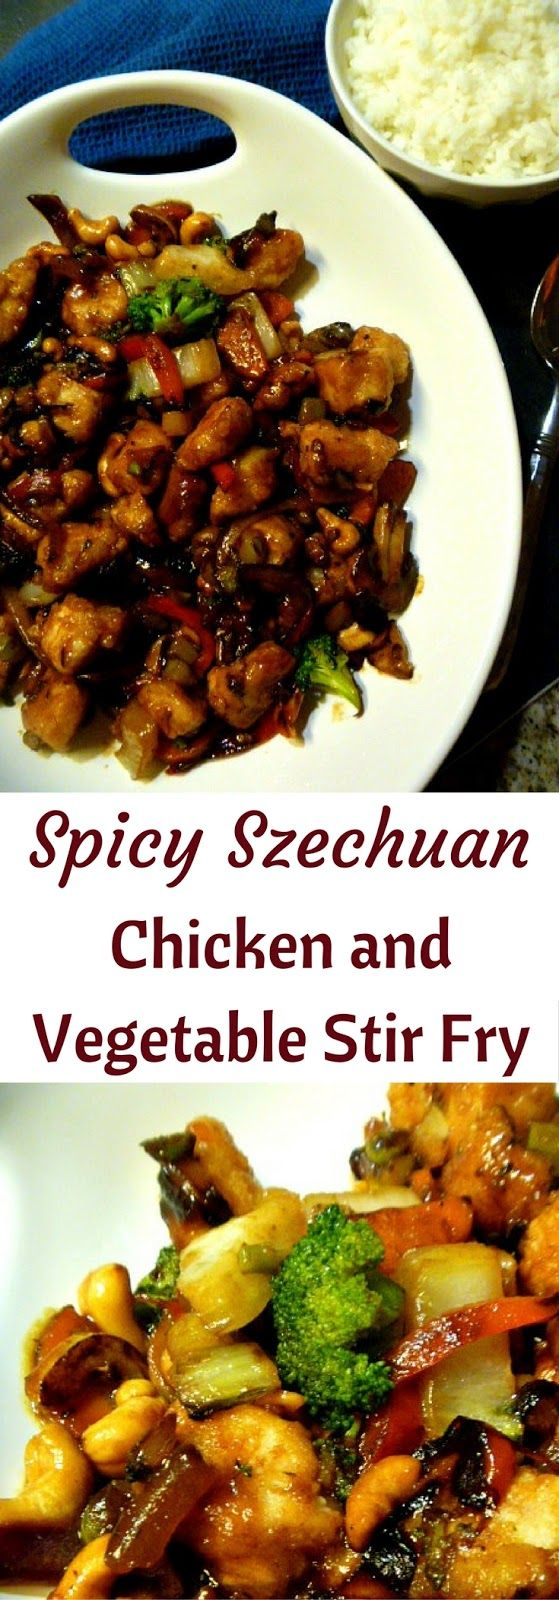 Spicy Szechuan Chicken and Vegetable Stir Fry